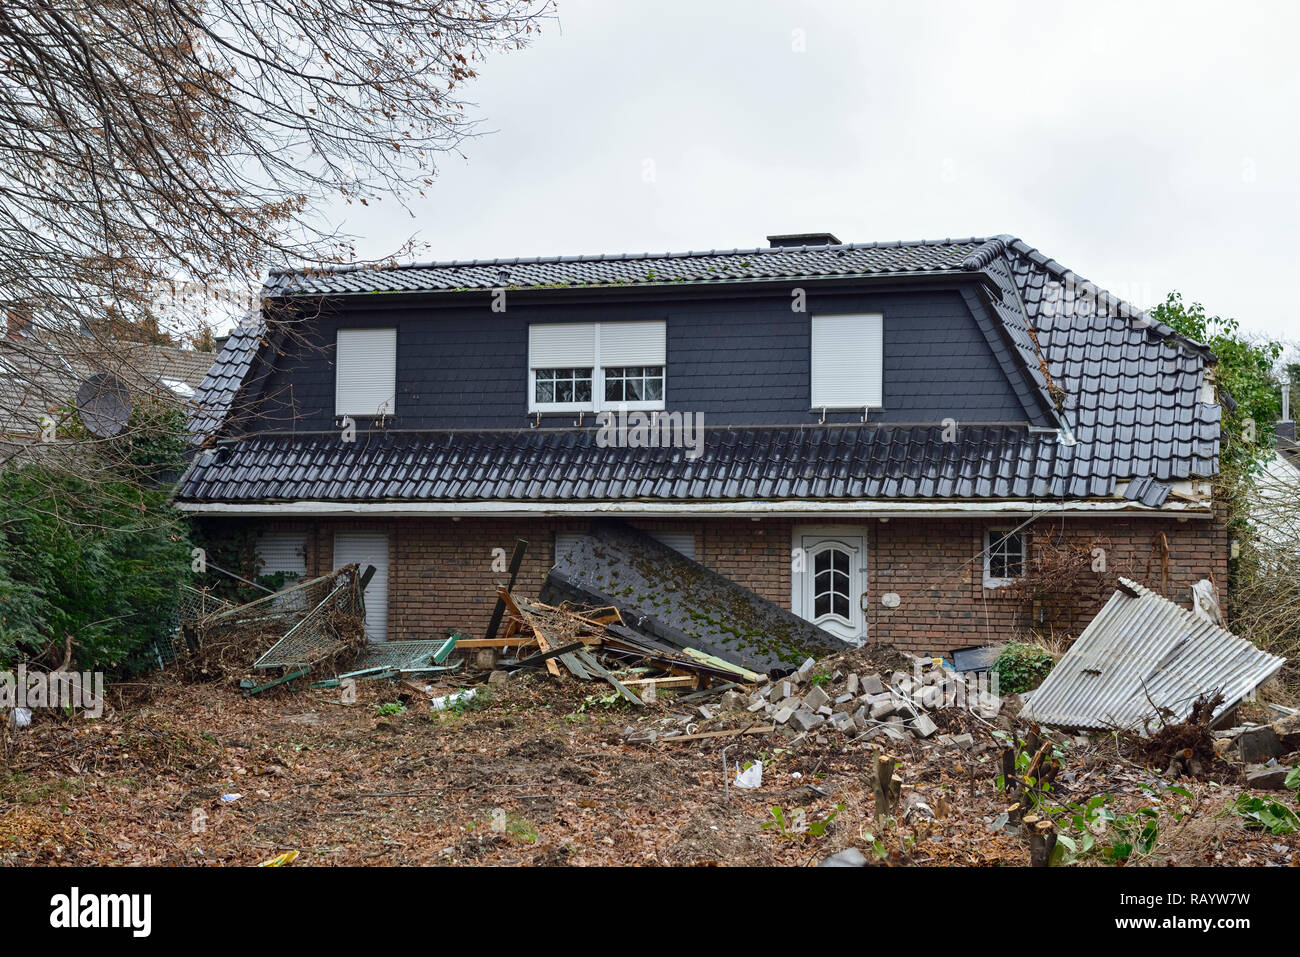 December 2018, Vacated house in Manheim Kerpen, Nordrhein-Westfalen, Germany - Demolition in preparation for the expanding lignite surface mine of RWE - Stock Image